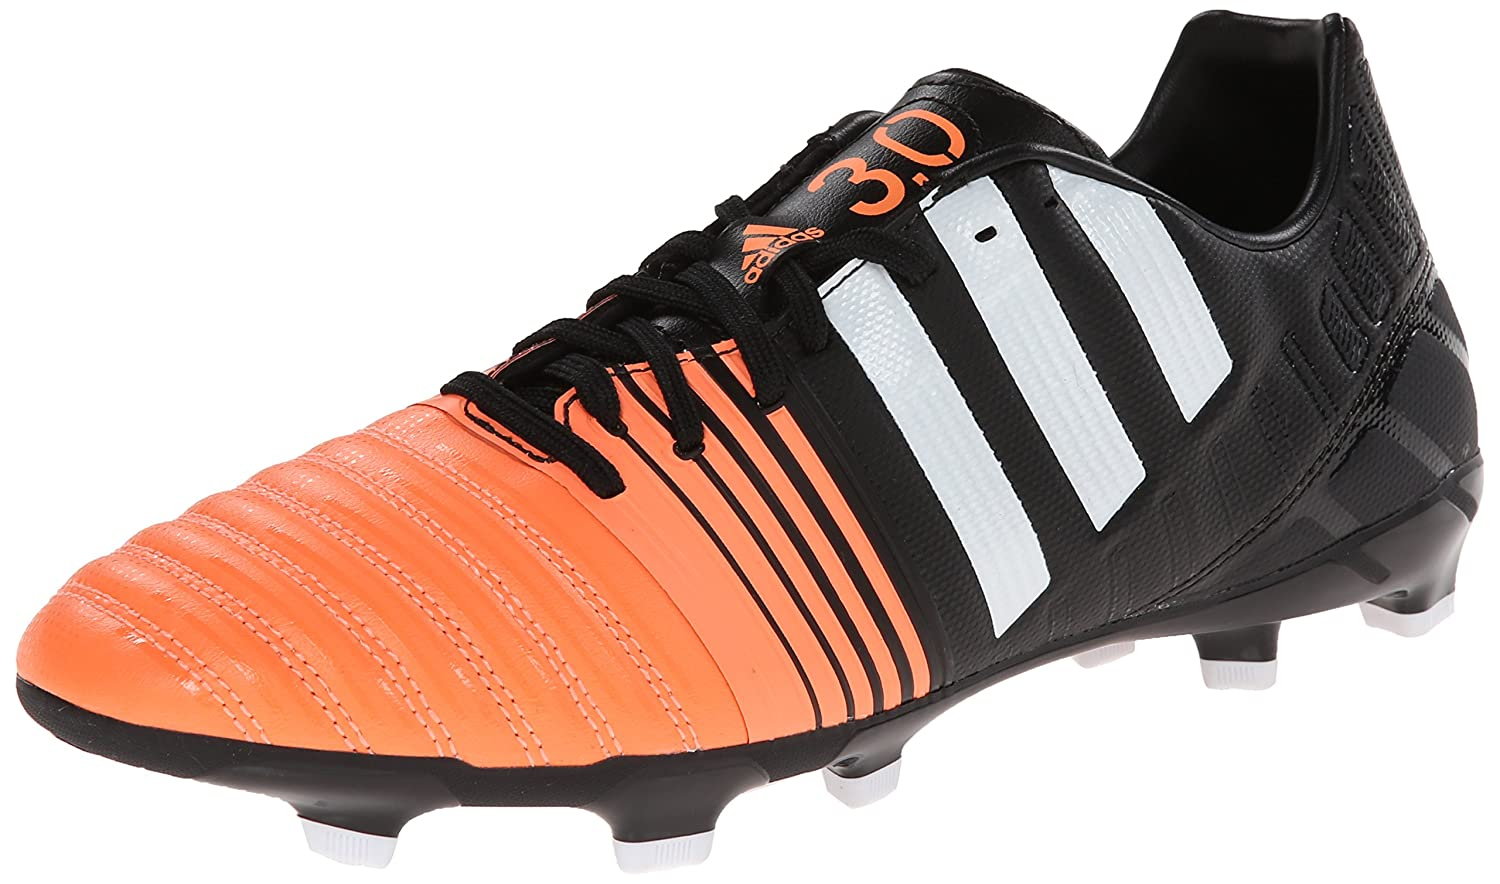 Adidas Nitrocharge 3,0 Cleats